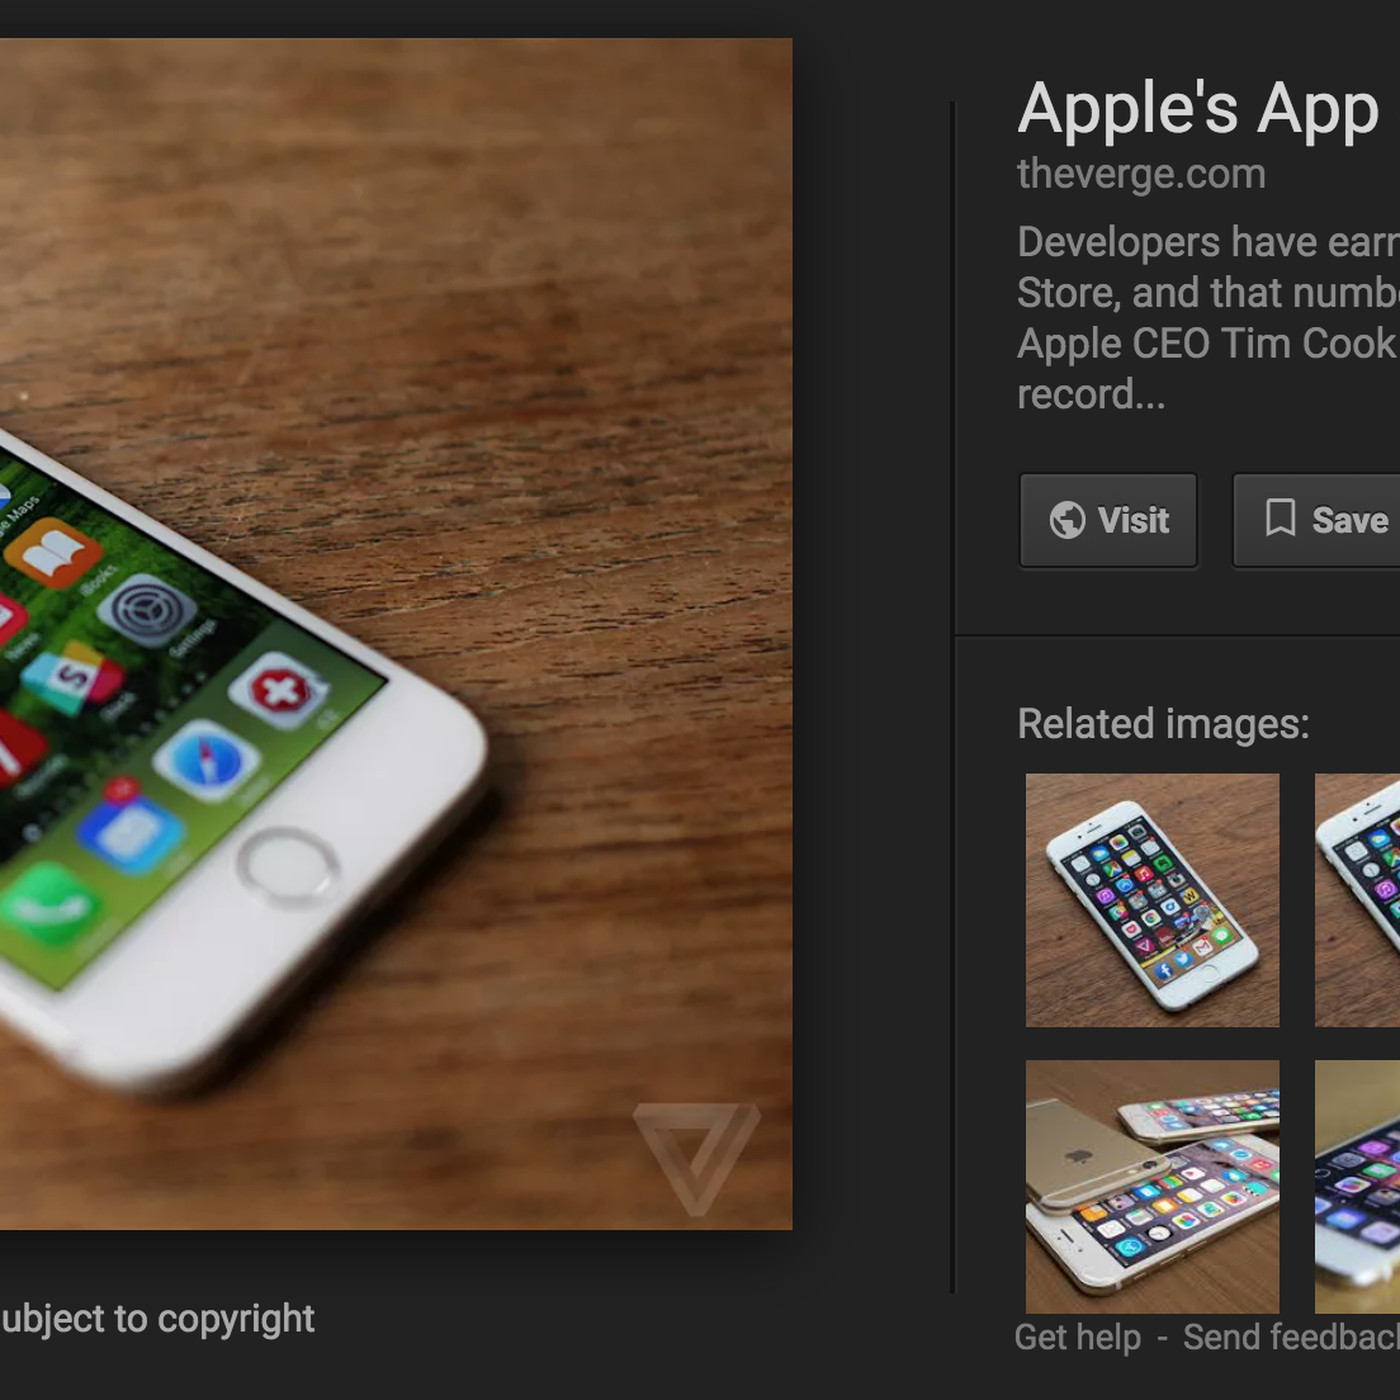 Google removes 'view image' button from search results to make pics